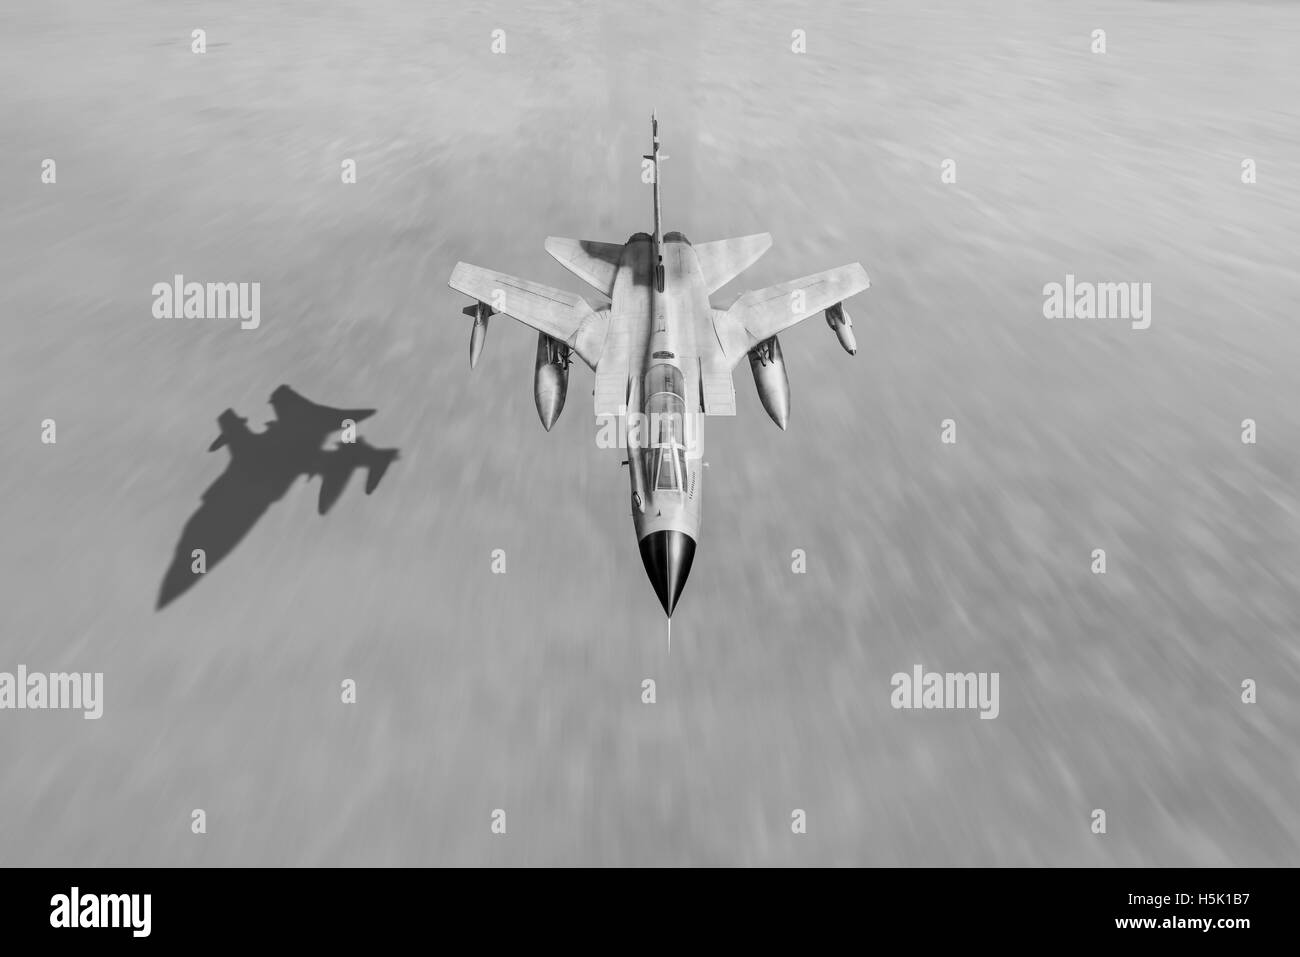 A depiction of a Royal Air Force Tornado GR.1 at low level over the Iraqi desert during Operation Desert Storm. - Stock Image